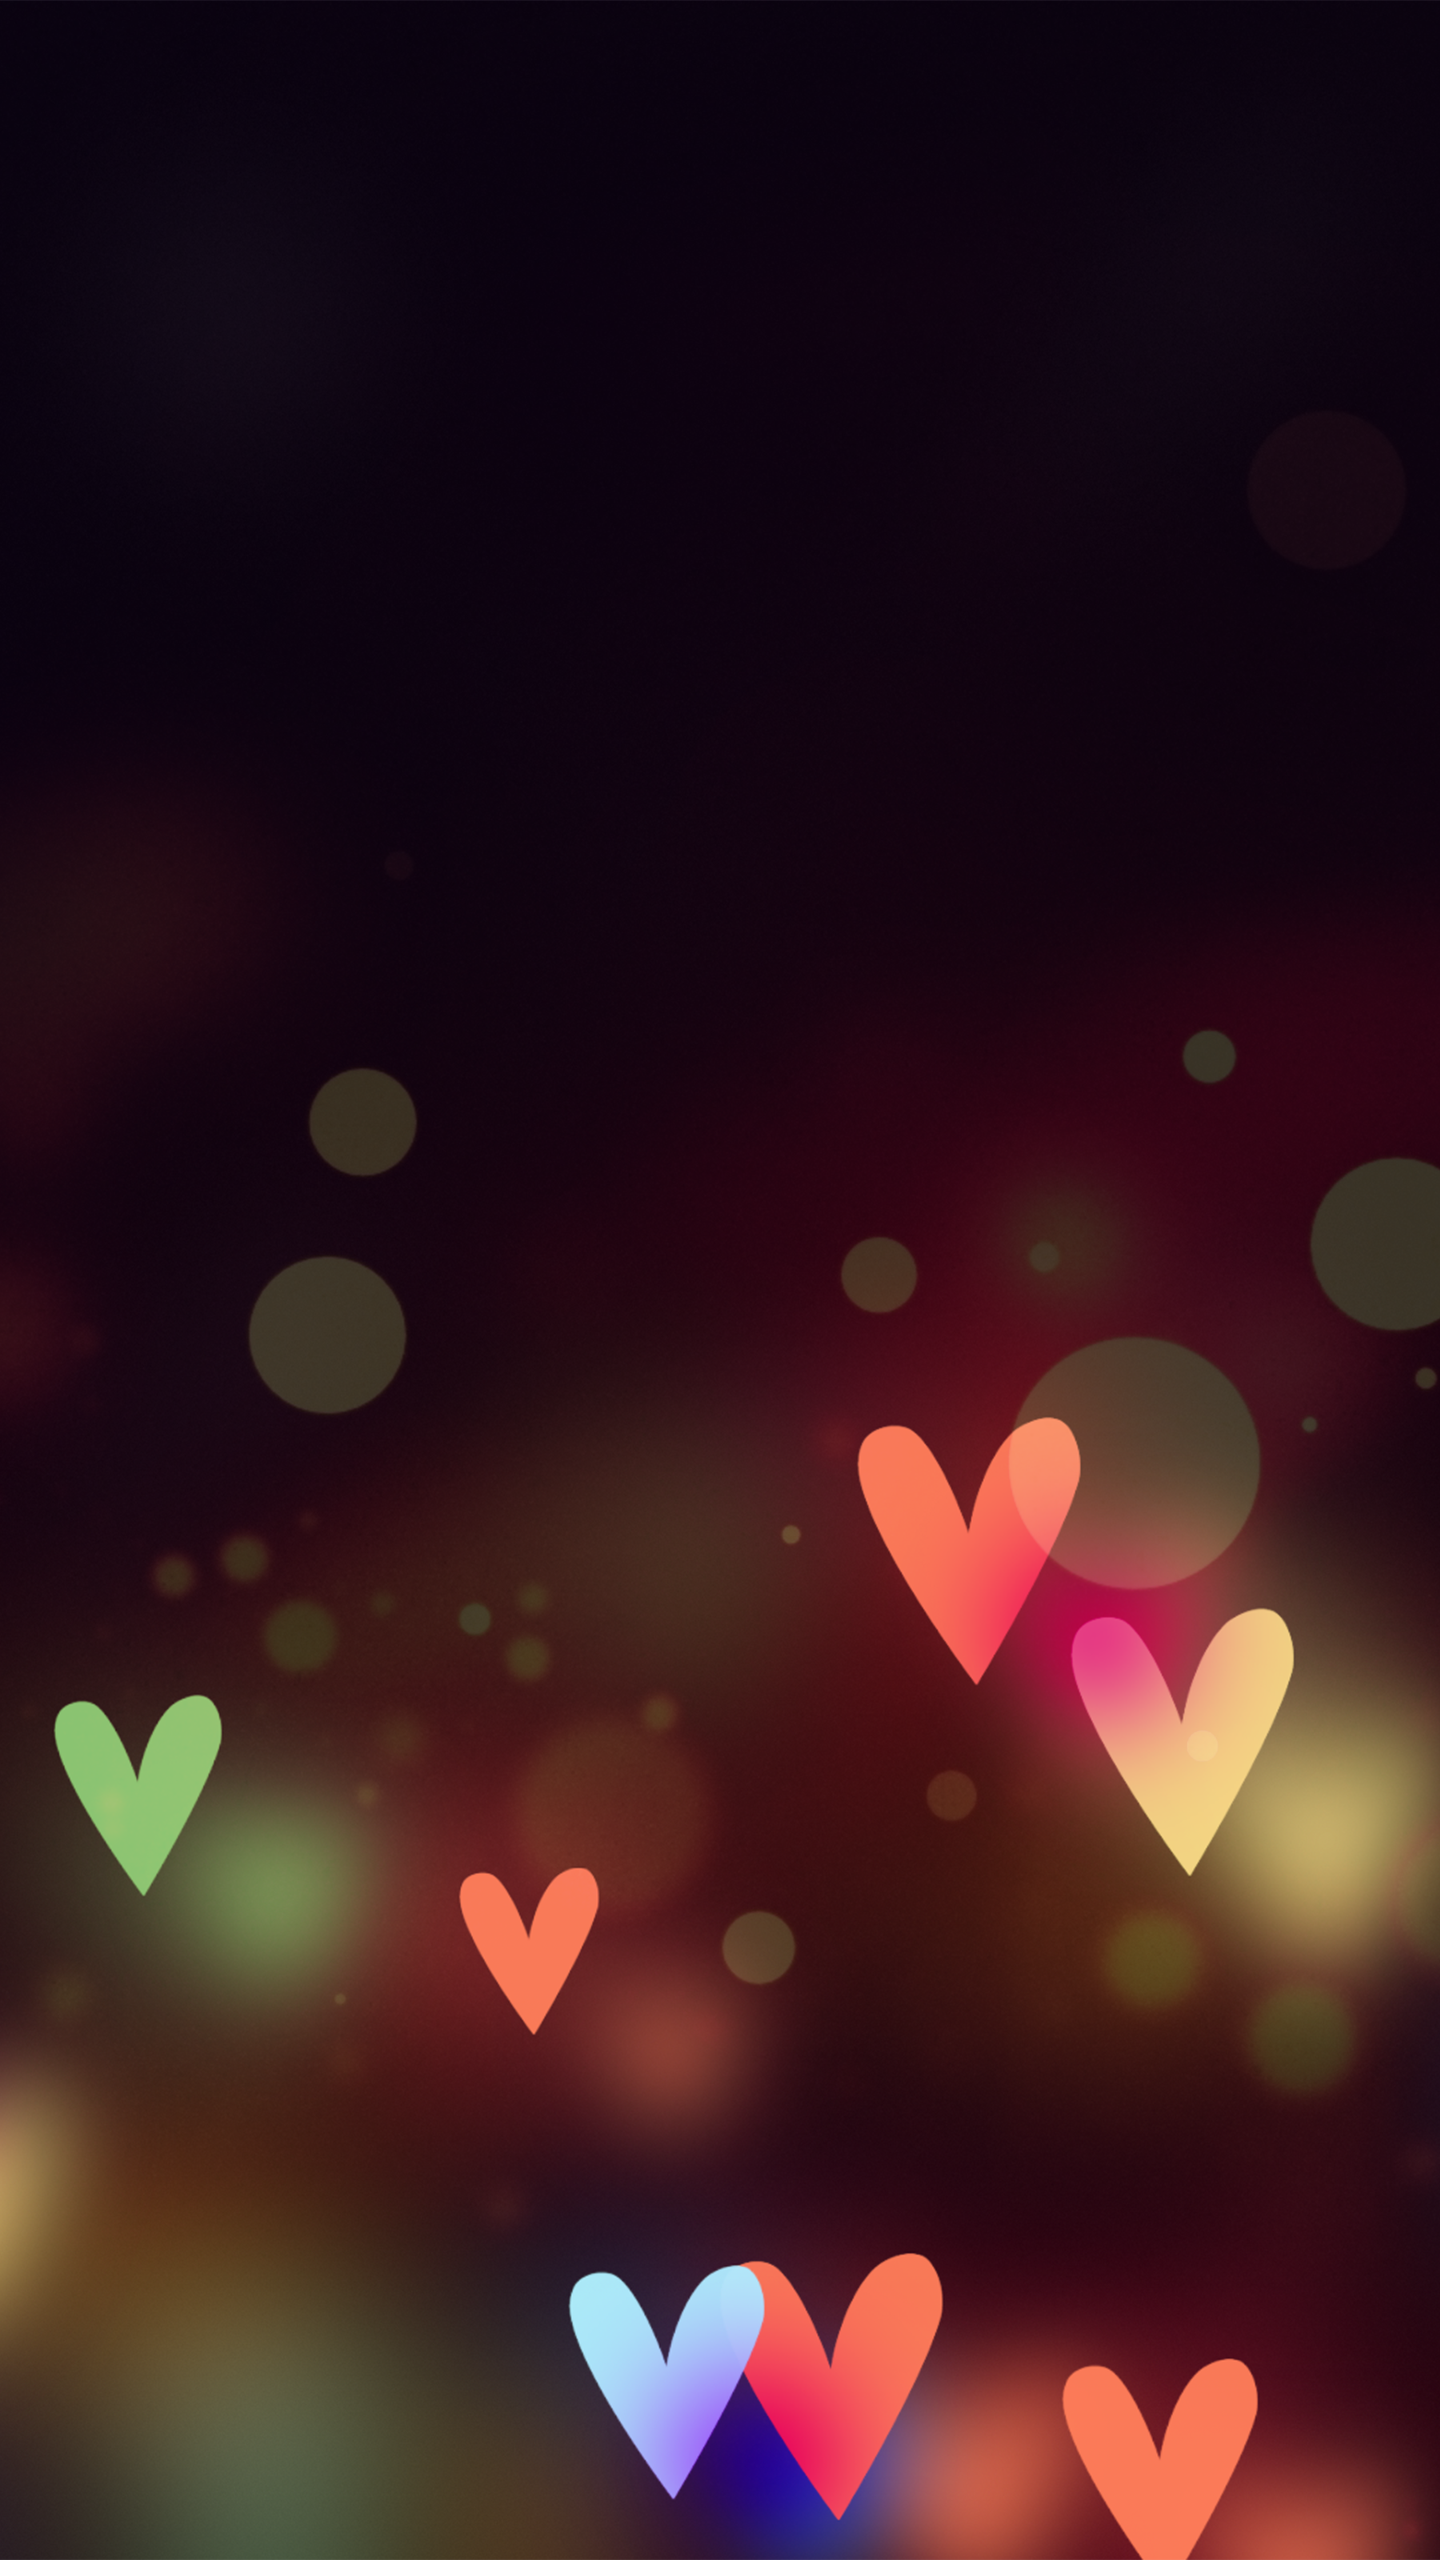 Love Wallpaper Deviantart : Love Wallpaper iPhone 6S Plus by lirking20 on DeviantArt